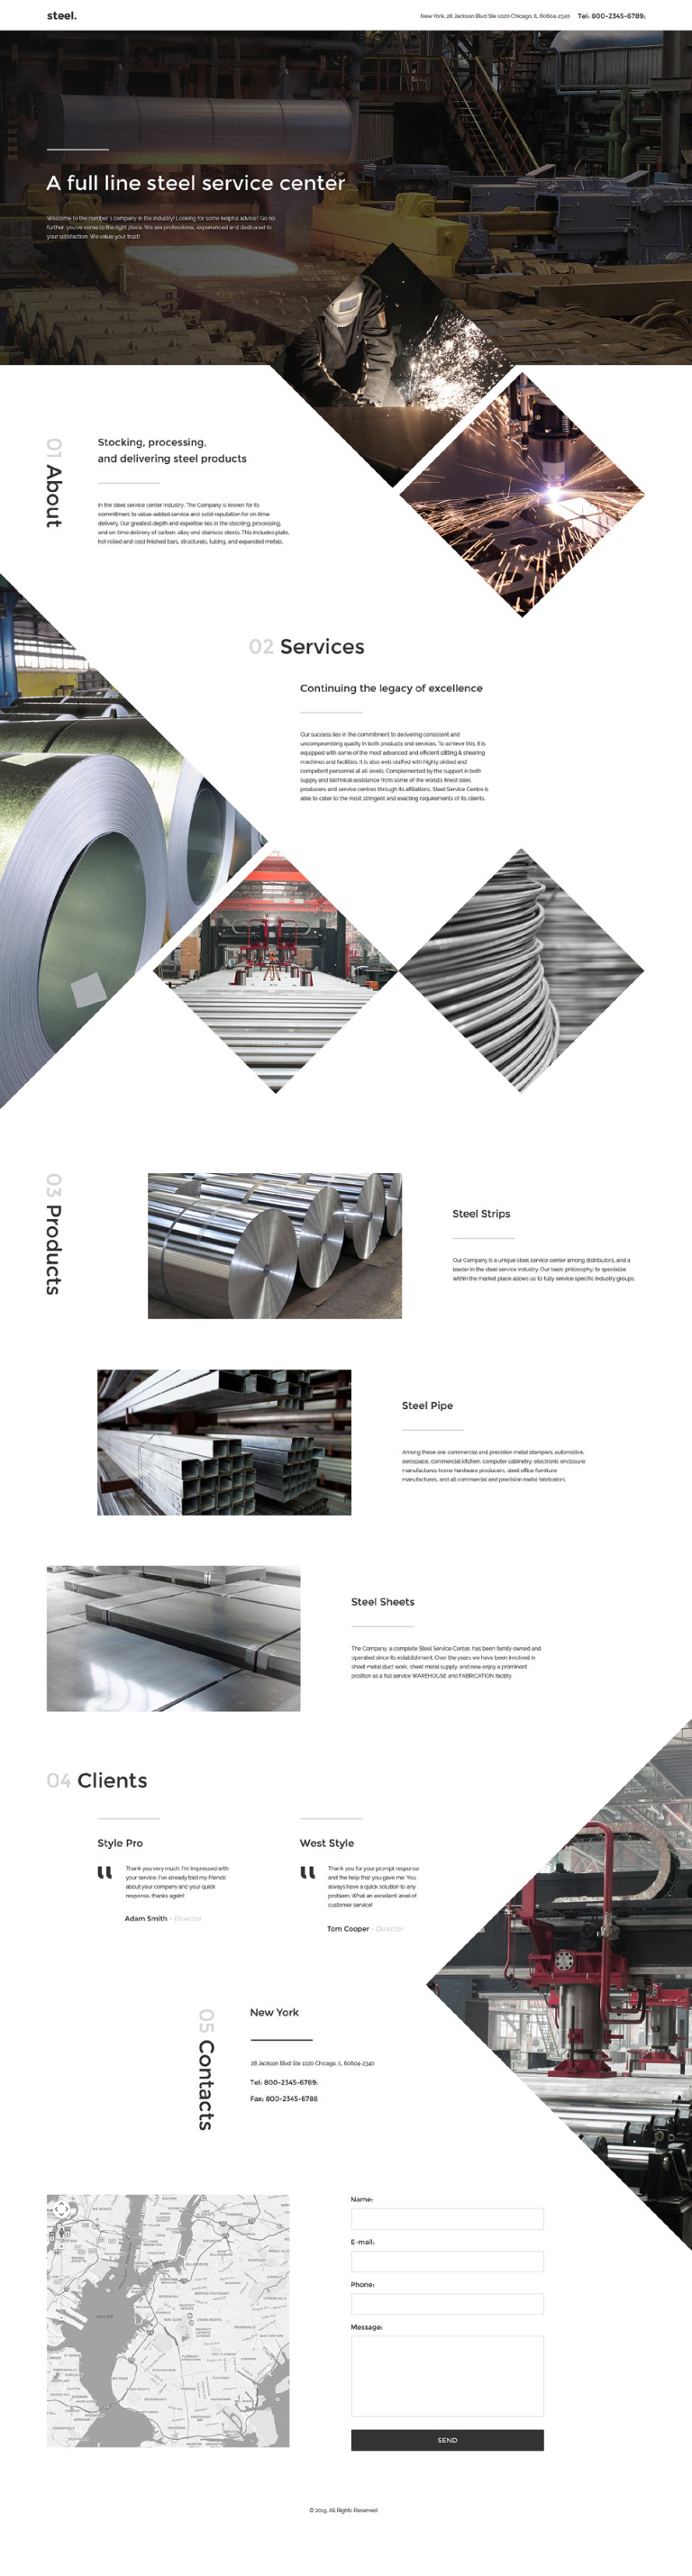 Steelworks Landing Page Template New Screenshots BIG